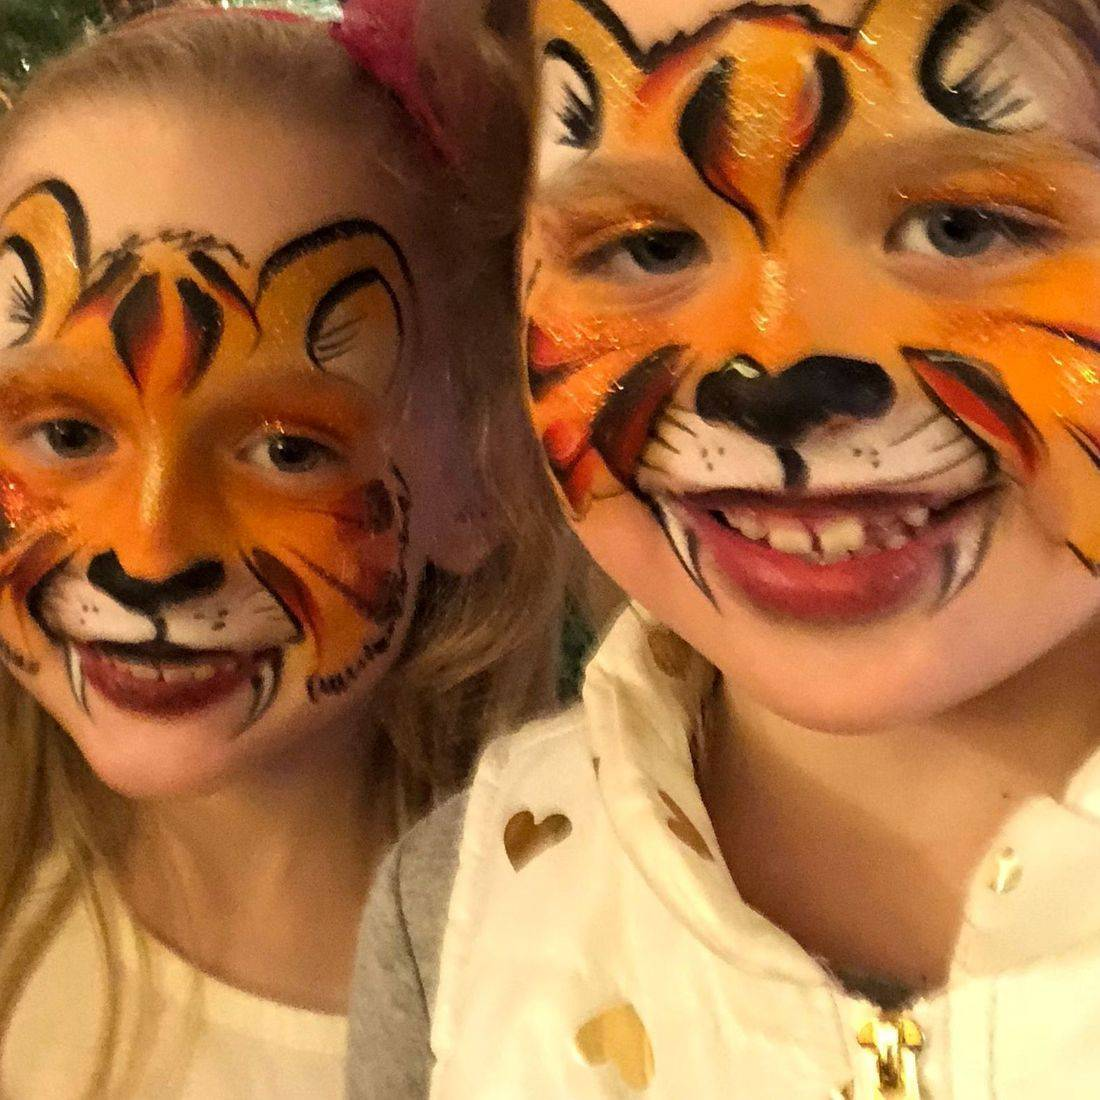 birthday parties, events, Moana princess crown, face painting, body art, festivals,